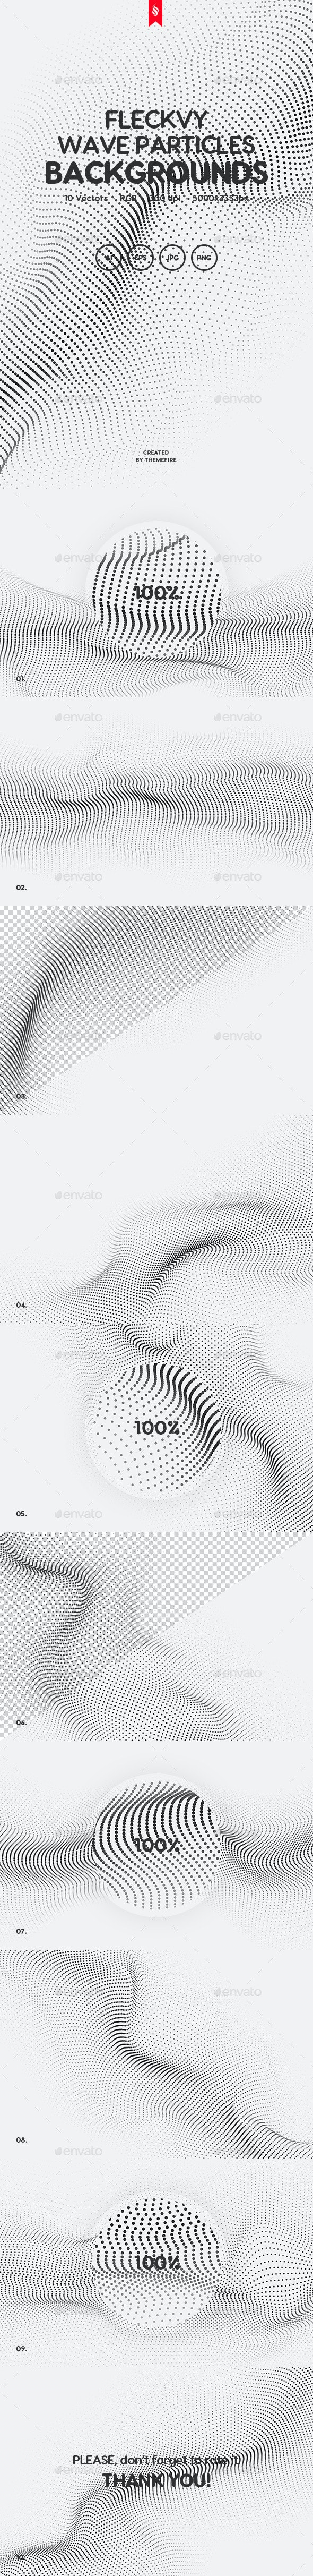 Fleckvy - Abstract Futuristic Wave Particles on White Background - Tech / Futuristic Backgrounds